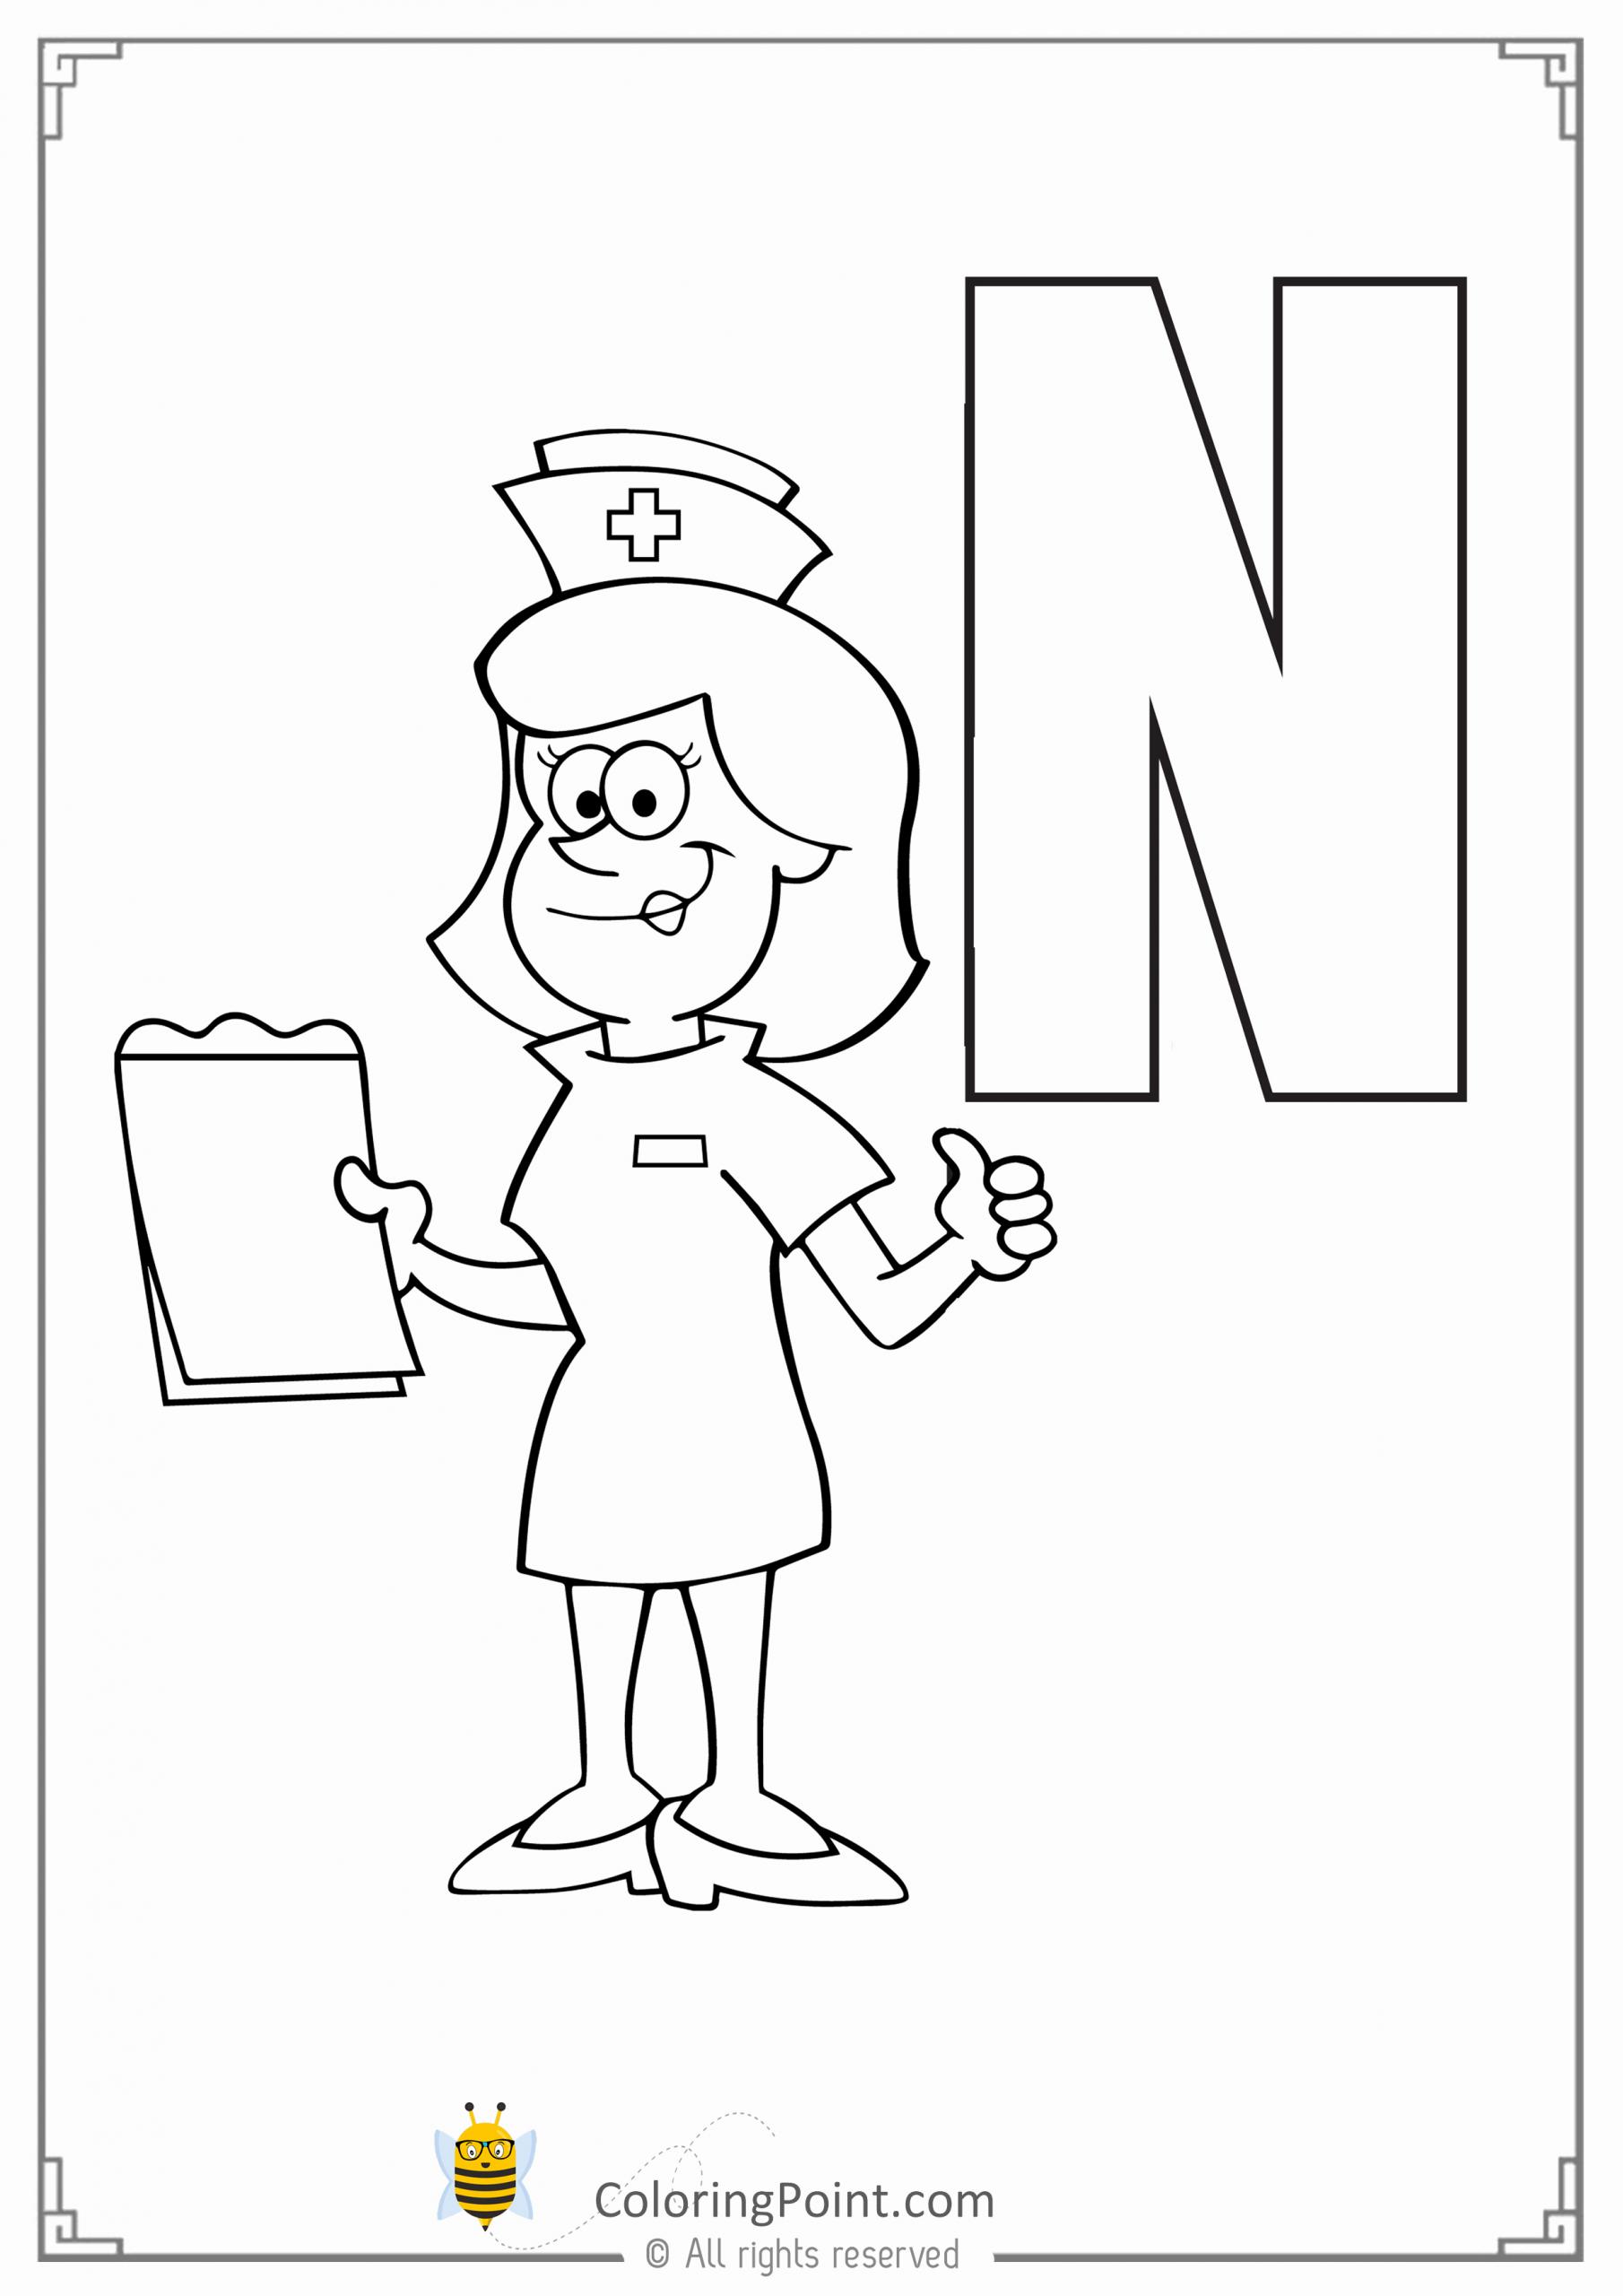 n is for nurse coloring page letter n coloring sheet in 2020 alphabet coloring pages nurse coloring n for is page